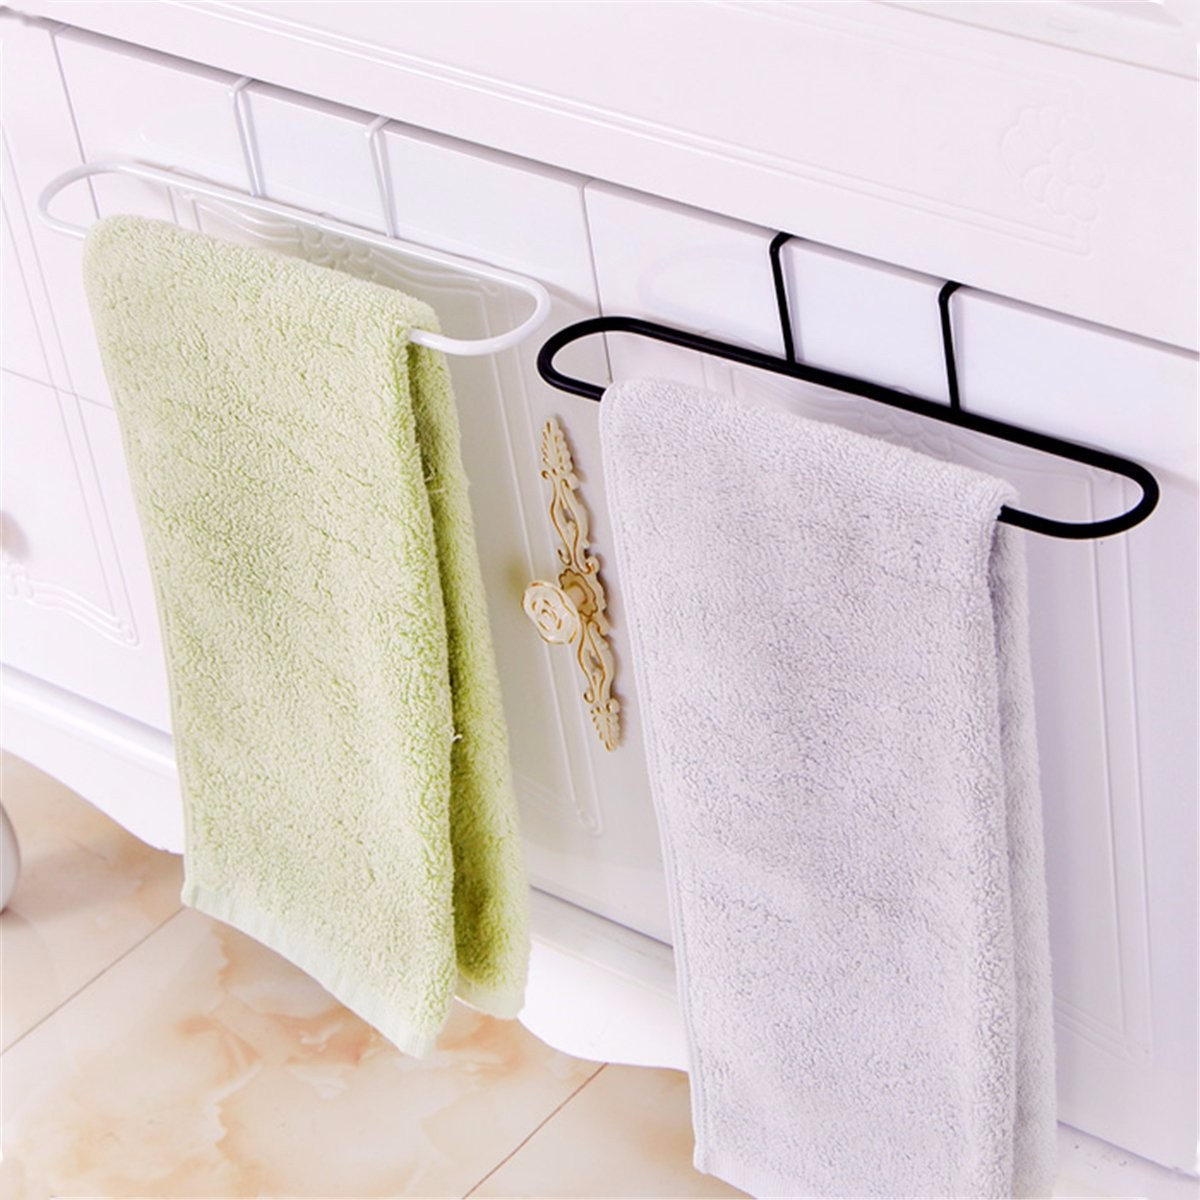 Towel Holder Kitchen Multi-Purpose Towel Rack Cabinet Cupboard Door Back Wipe Hanger Bathroom Towel Bar